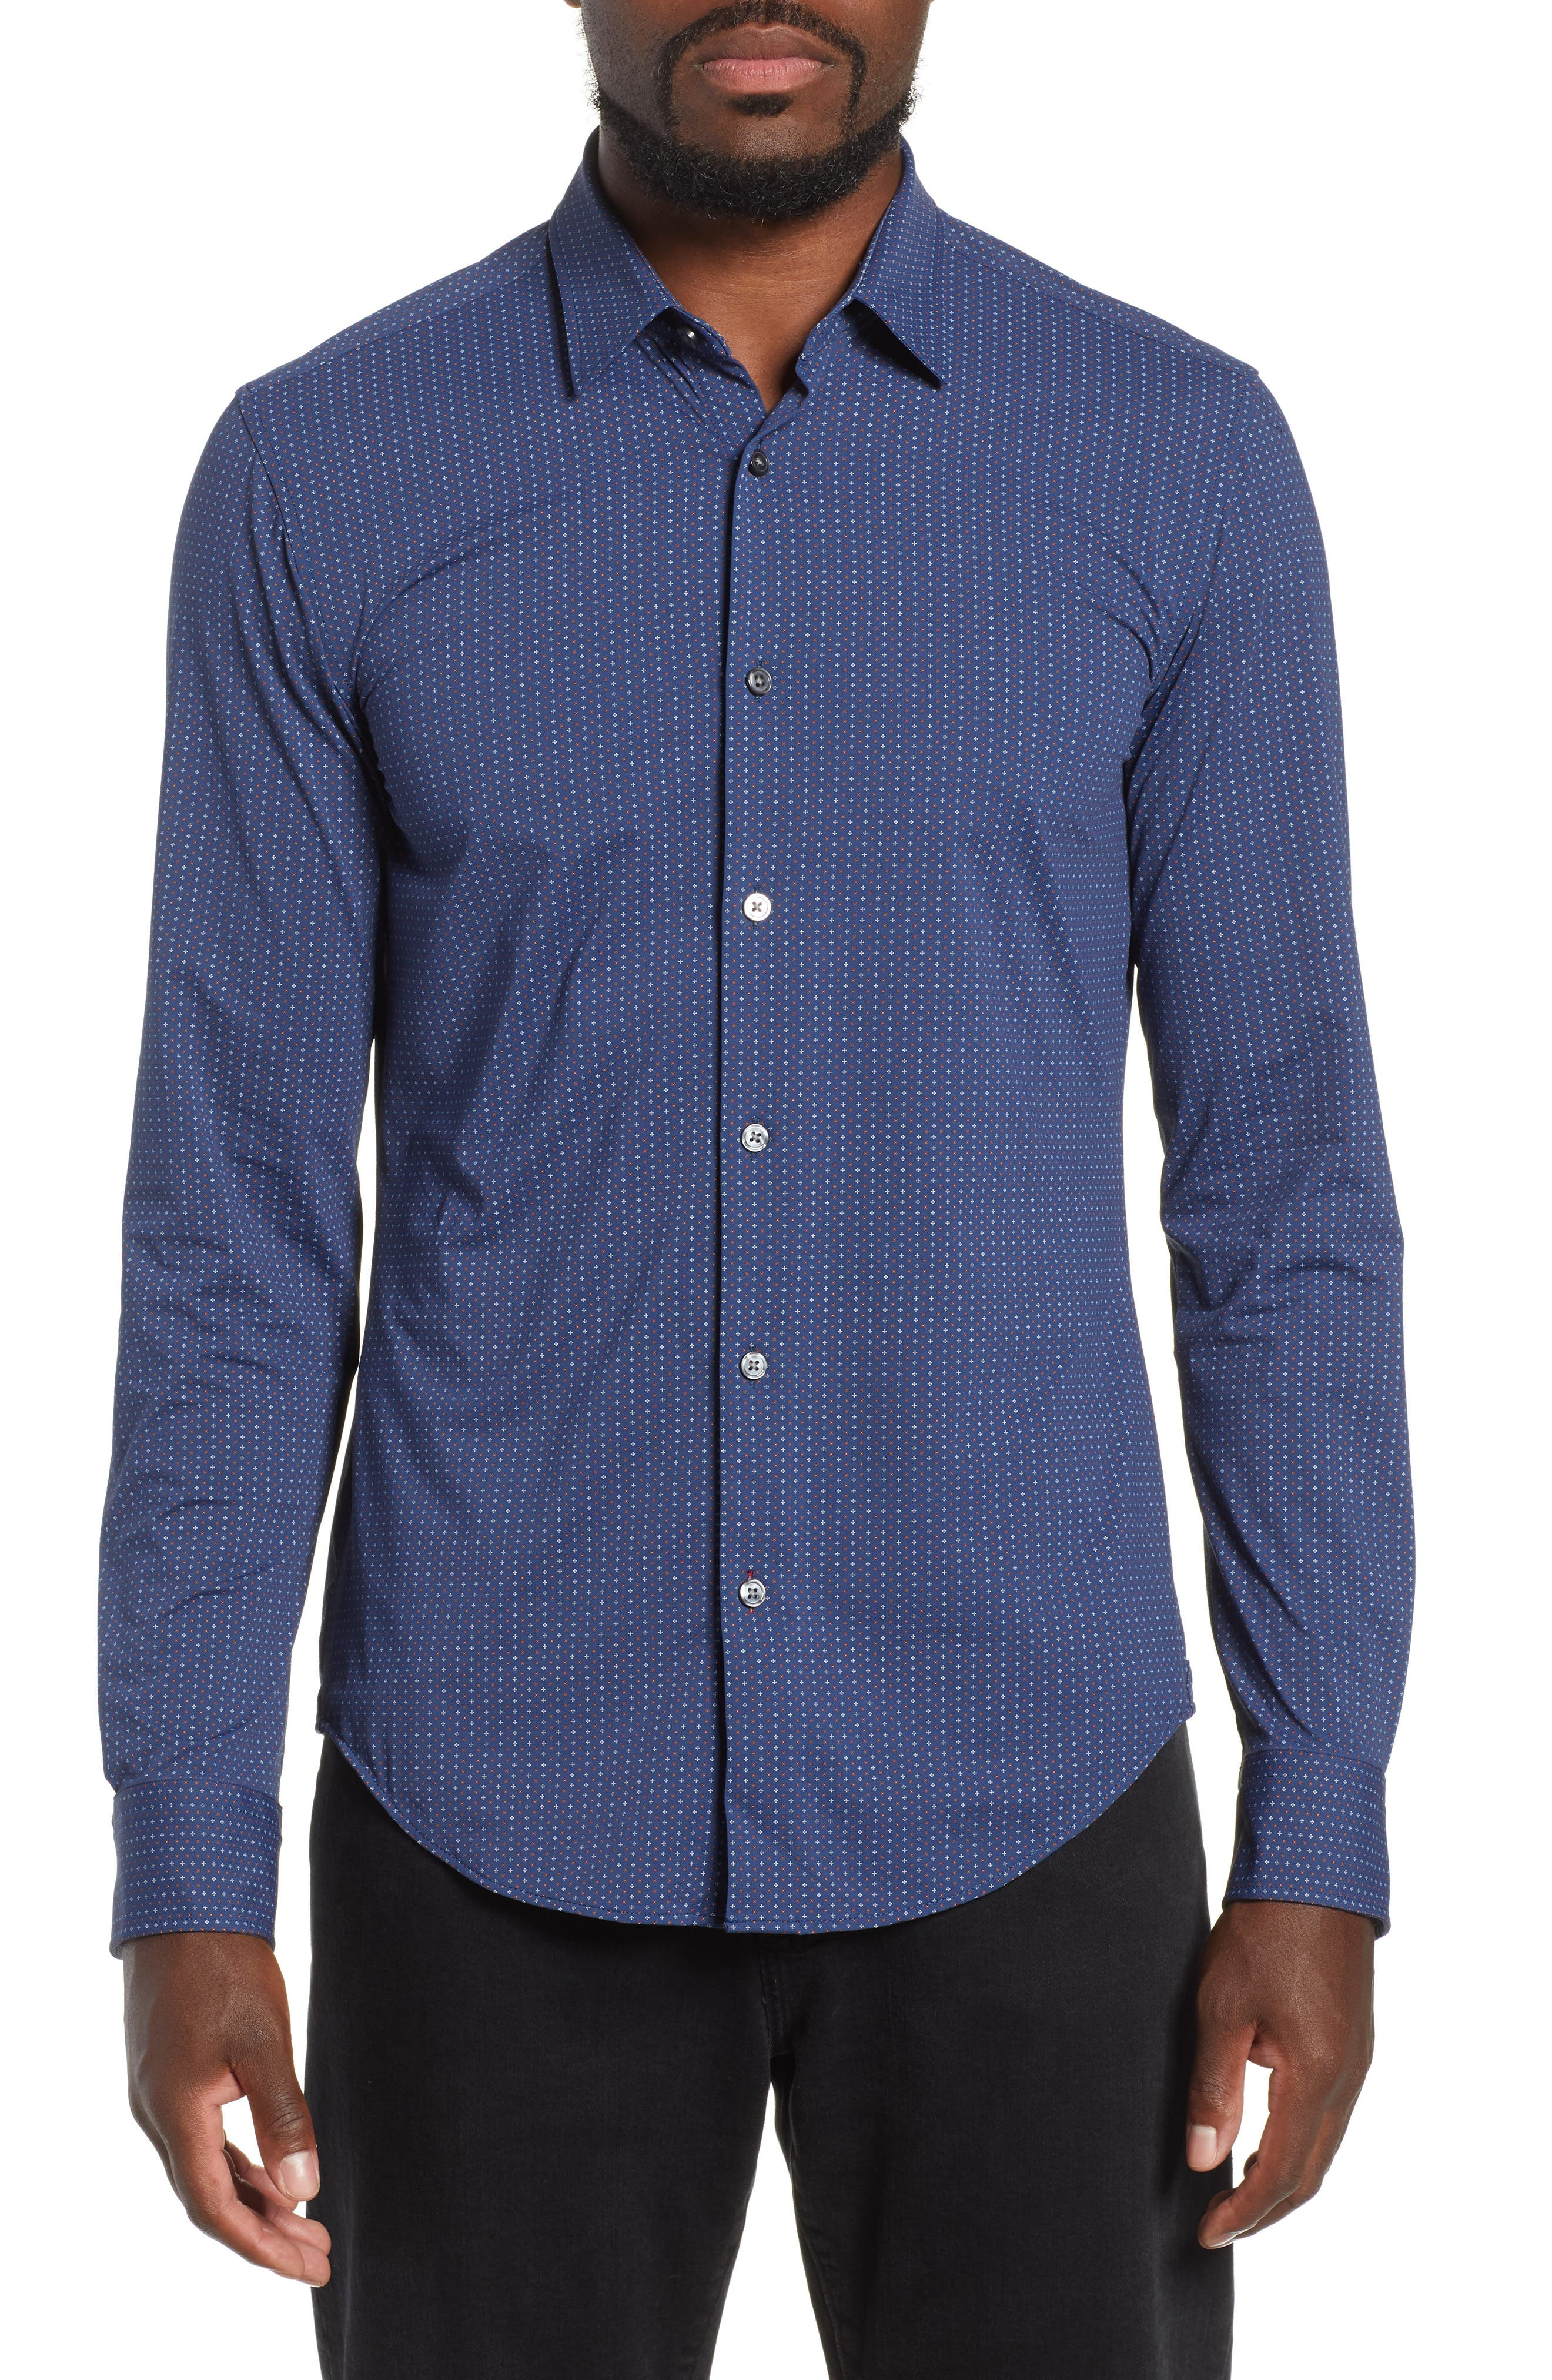 Ronni Slim Fit Stretch Sport Shirt,                             Main thumbnail 1, color,                             BLUE